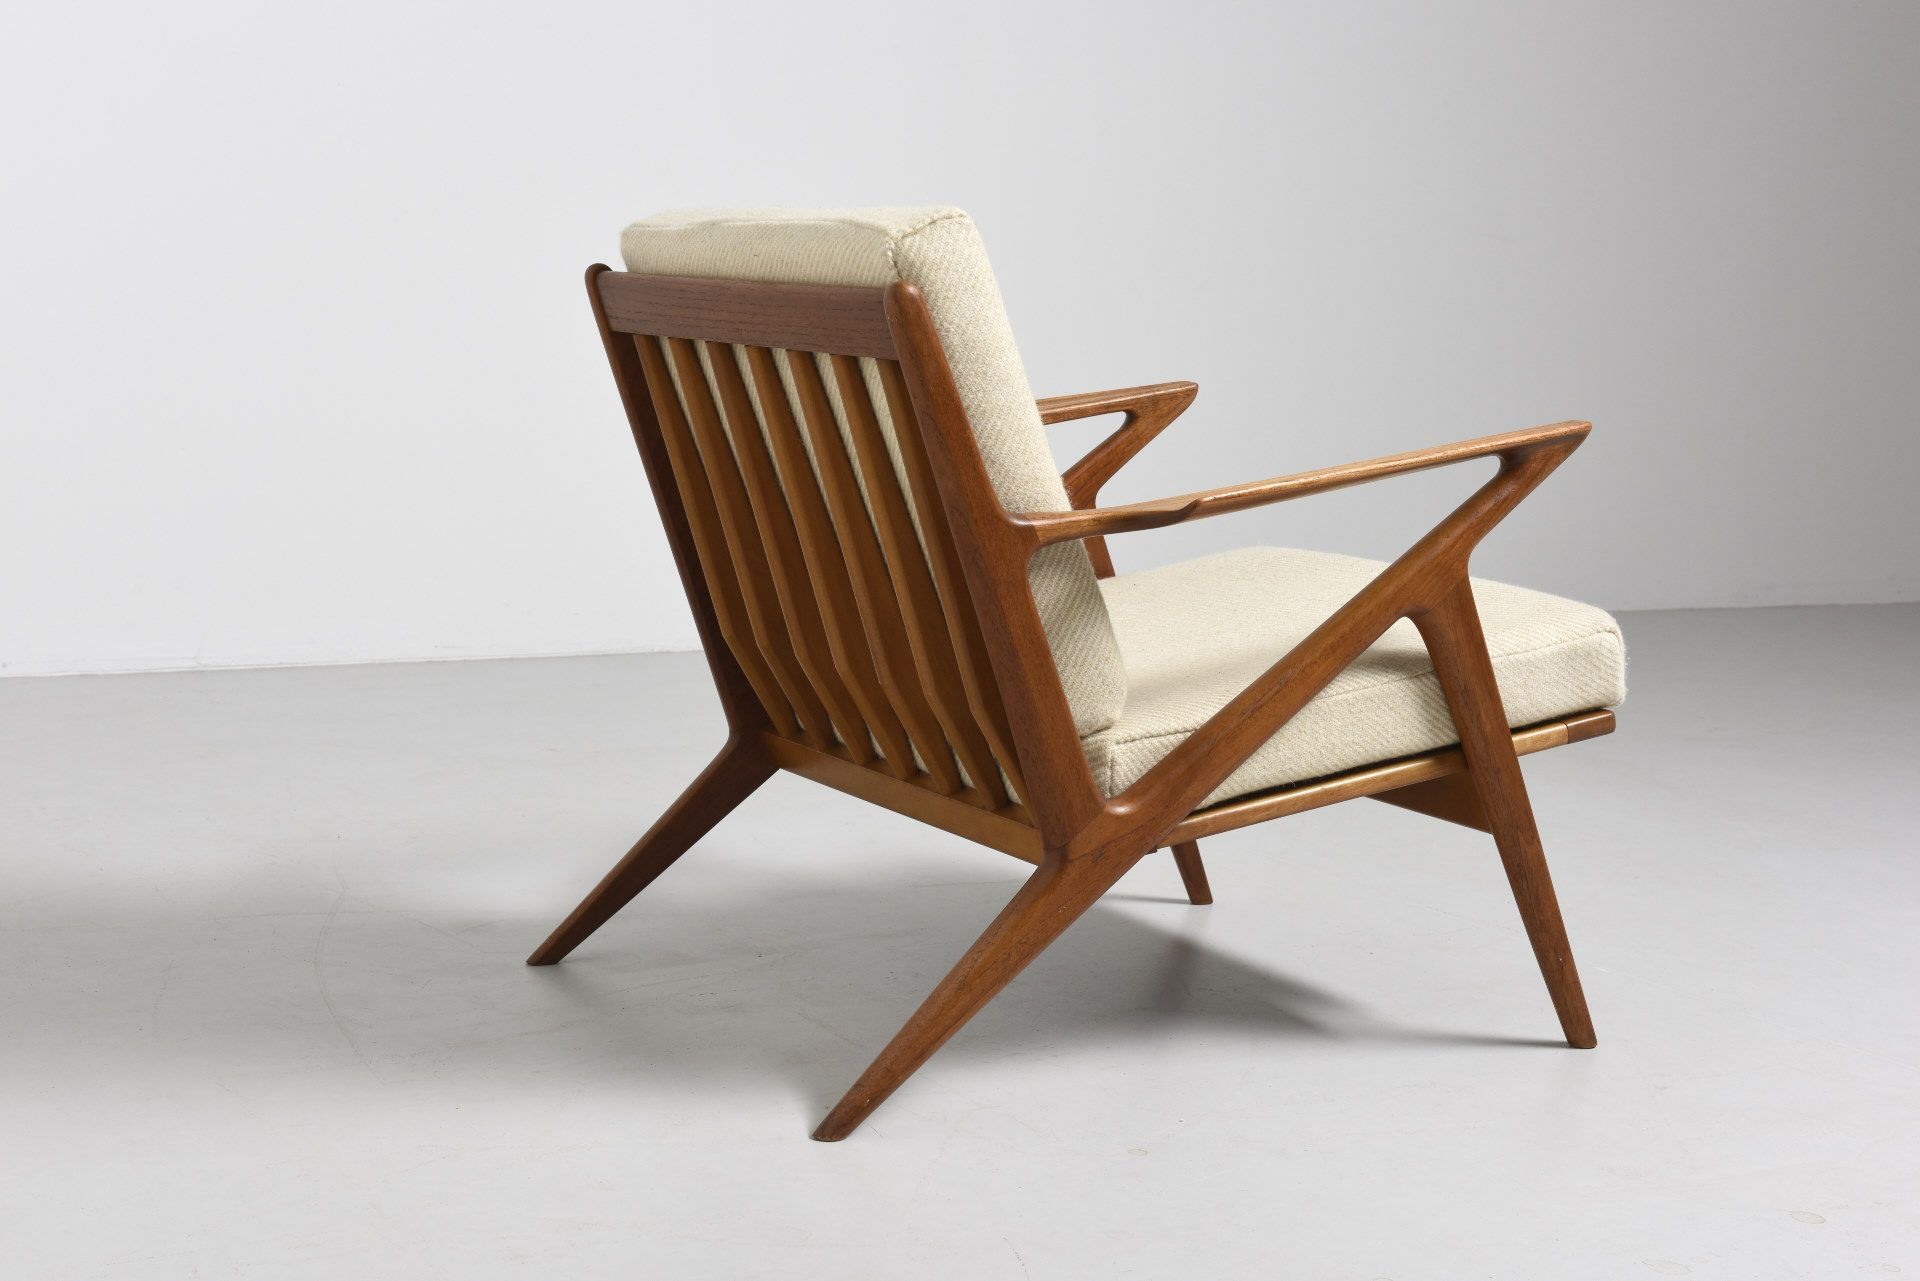 Z-CHAIR by POUL JENSEN -- Iconic easy chair in teak with the